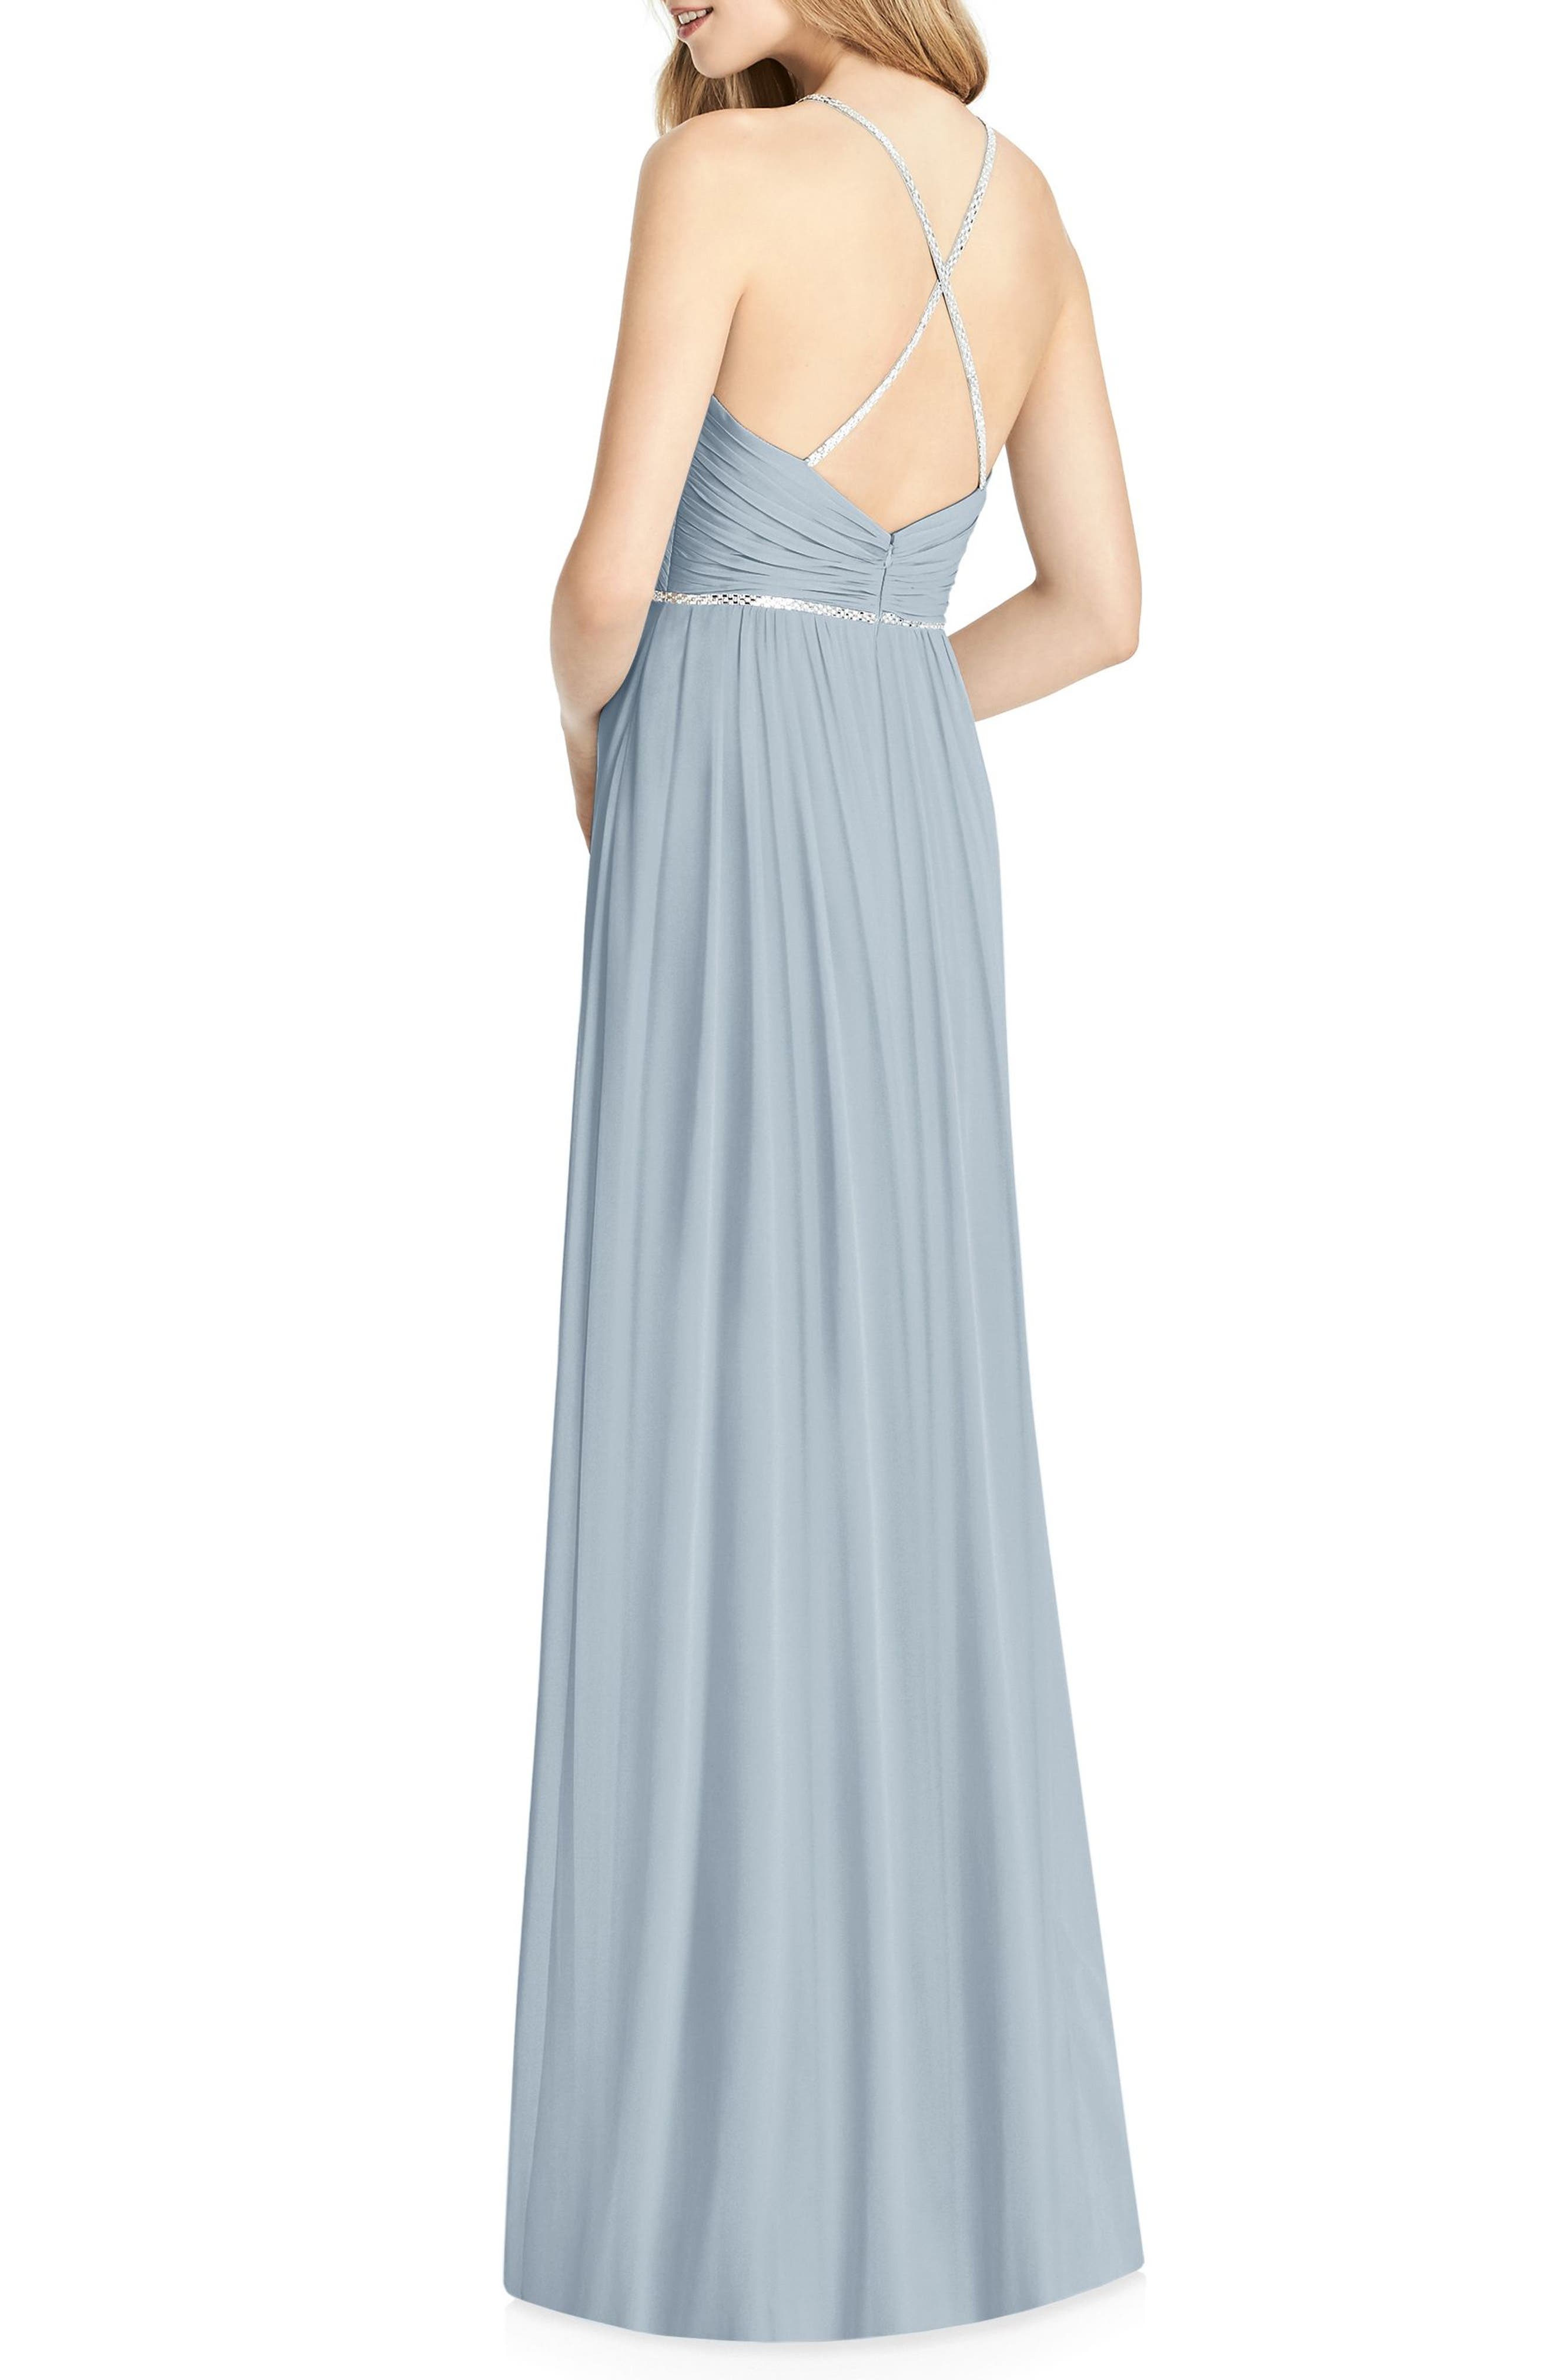 Alternate Image 2  - Jenny Packham Pleated Bodice Chiffon Gown